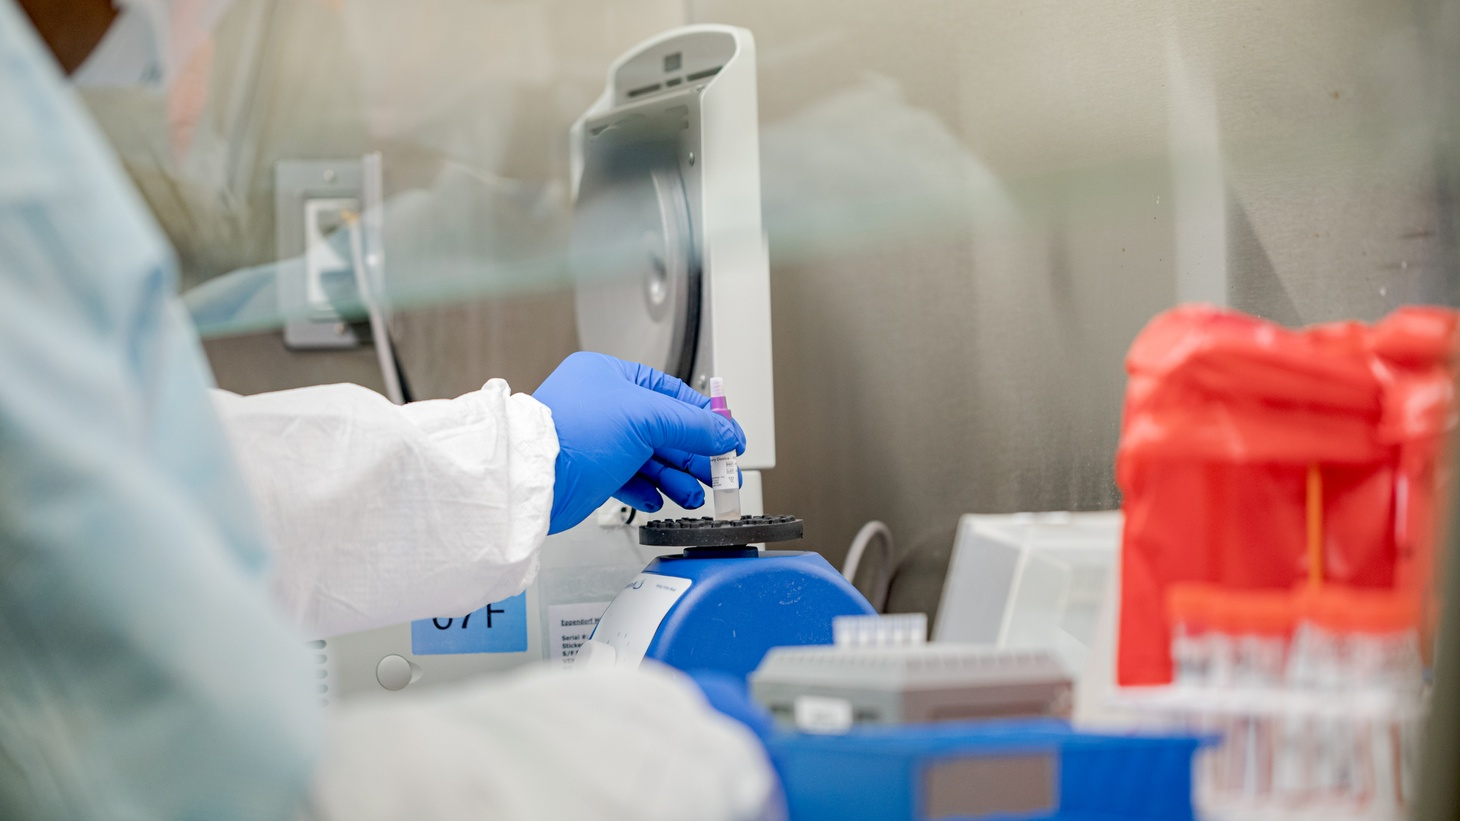 Pennsylvania Commonwealth microbiologist Kerry Pollard performs a manual extraction of the coronavirus at the Pennsylvania Department of Health Bureau of Laboratories on Friday, March 6, 2020.